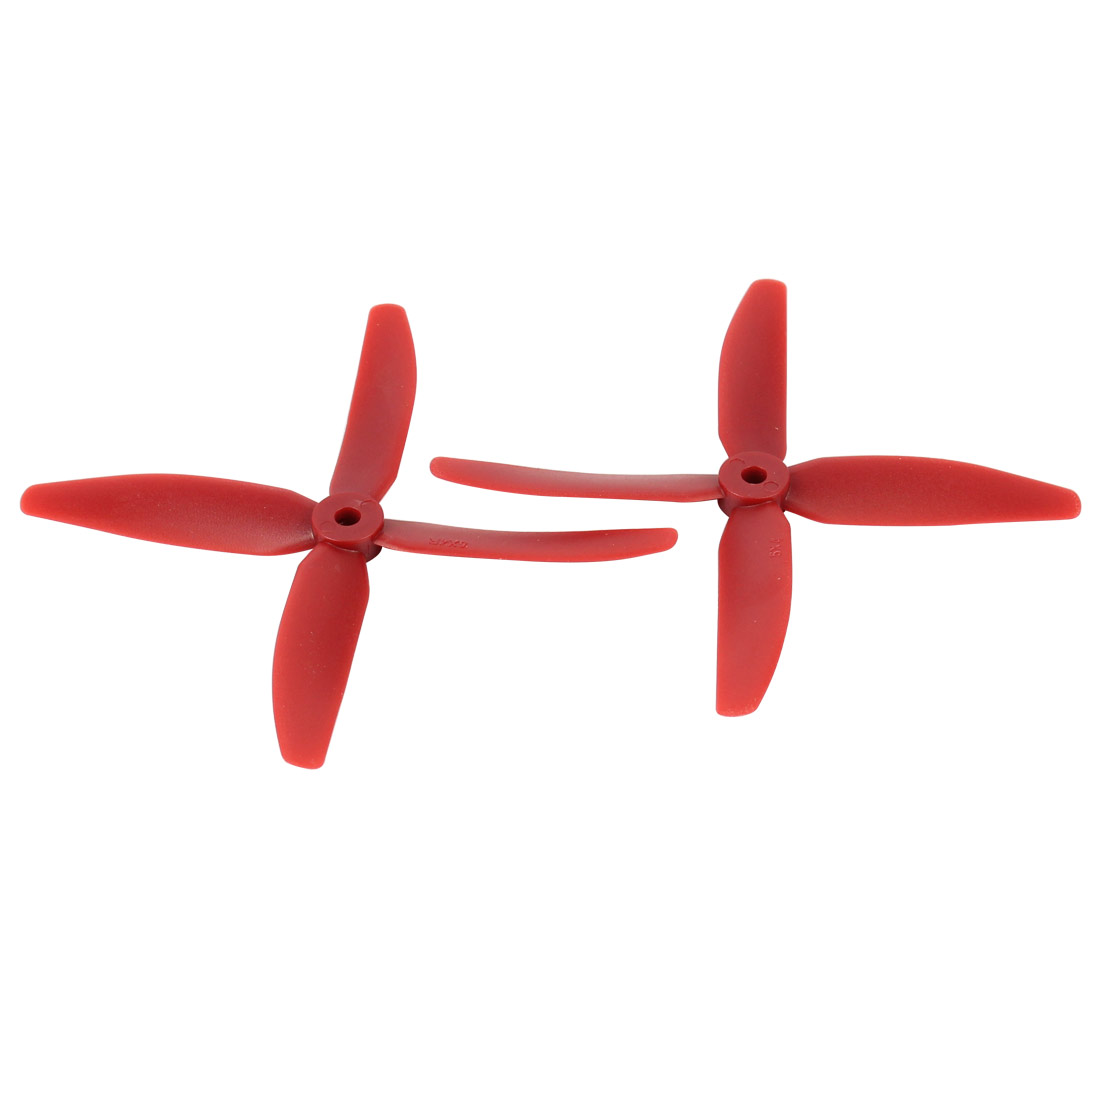 F18761/4 1 Pair <font><b>5040</b></font> 4-Leaf Propeller <font><b>Props</b></font> CW CCW for DIY RC Mini Racing Drone 210 250 280 320 230 255 Quadcopter image